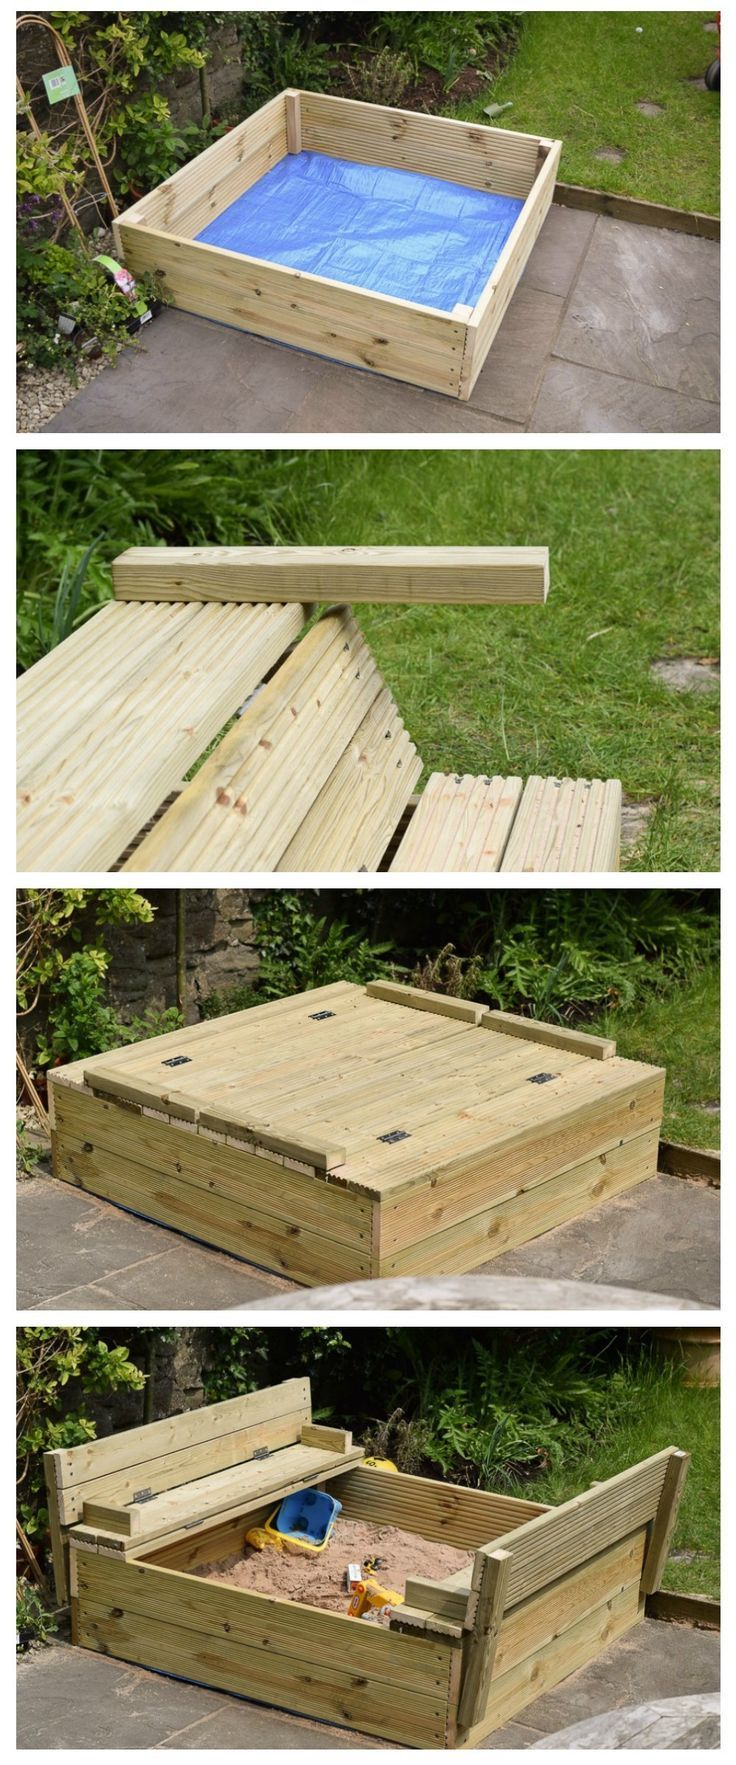 Diy Wooden Sandpit With Lid And Benches Wooden Sandbox Backyard